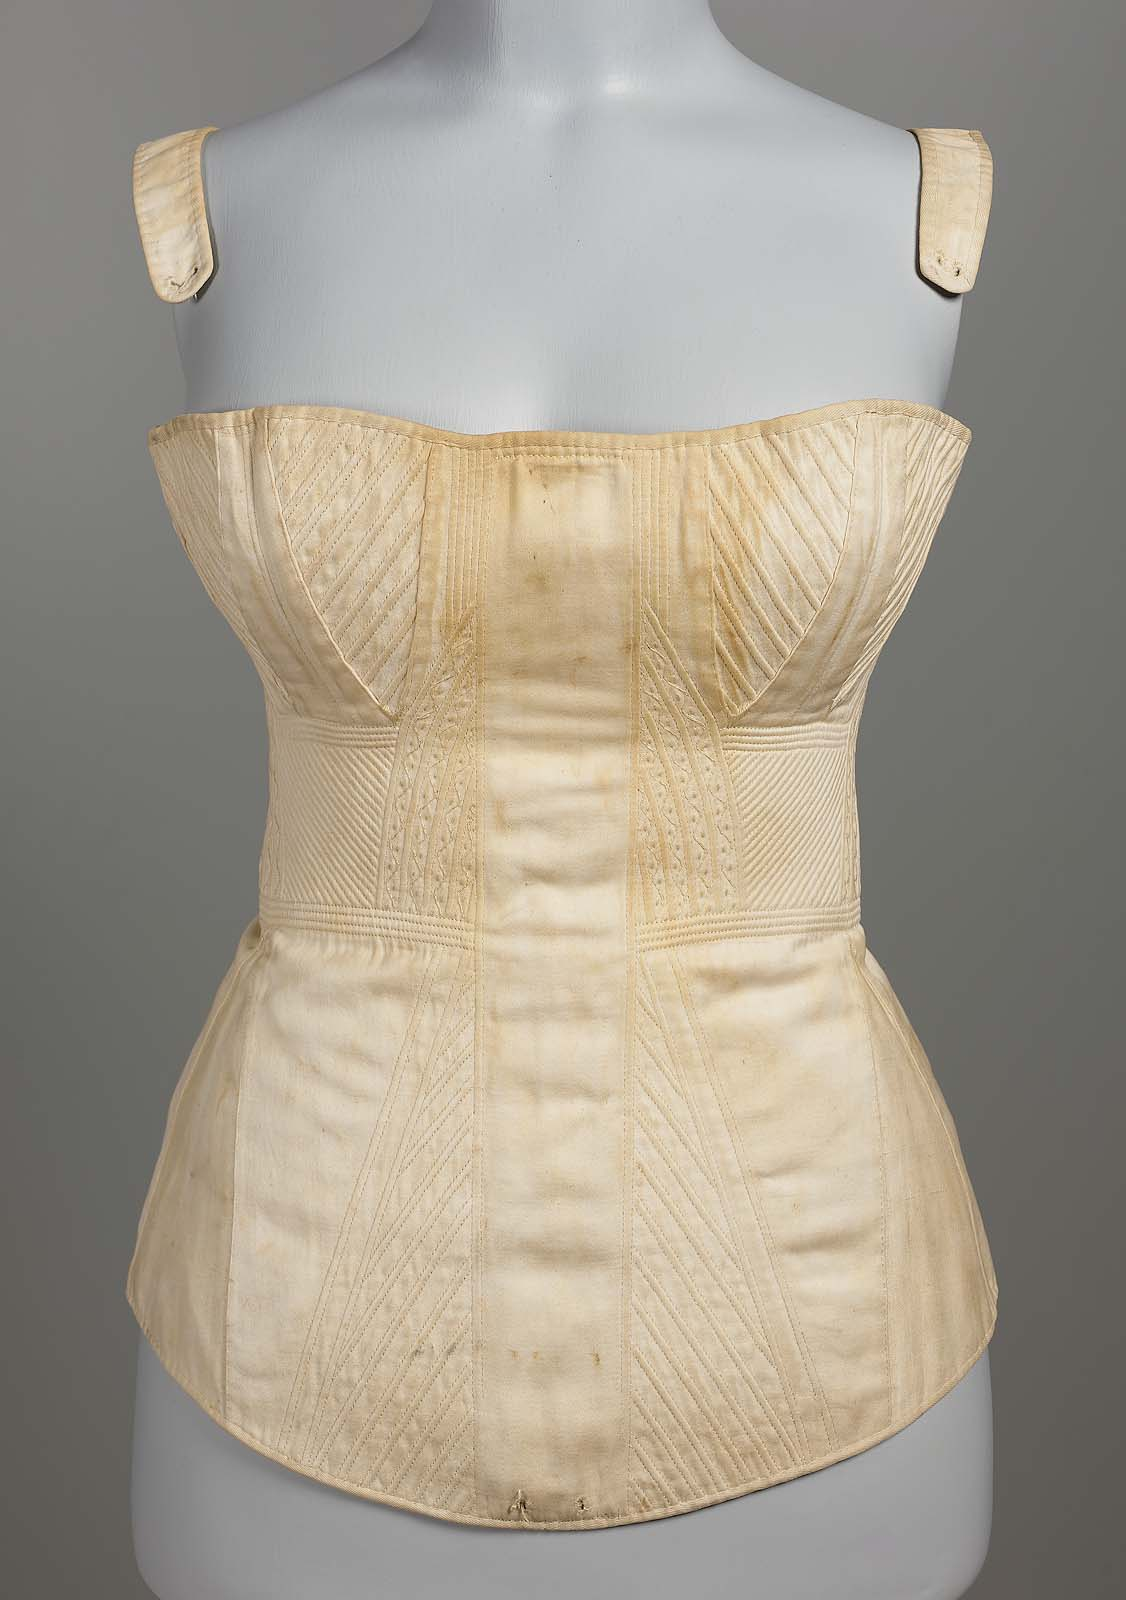 A quick guide to corset & stay styles from 1750 to 1850